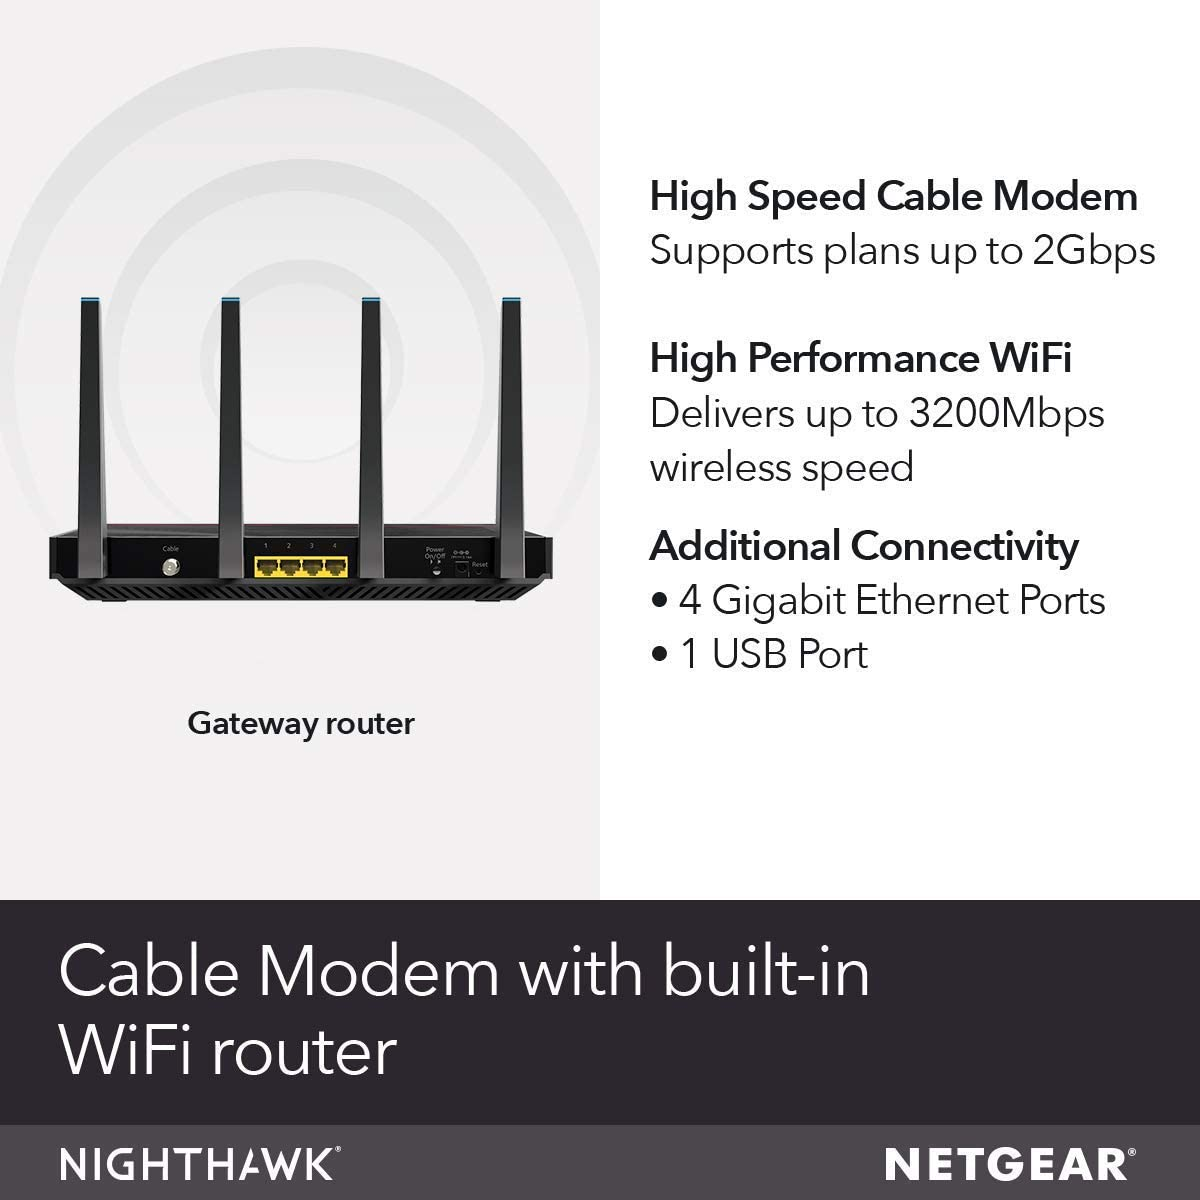 Netgear nighthawk cable modem best wifi router combo (c7800) compatible with cable providers including xfinity by comcast, cox, spectrum ac3200 wifi speed docsis 3.1